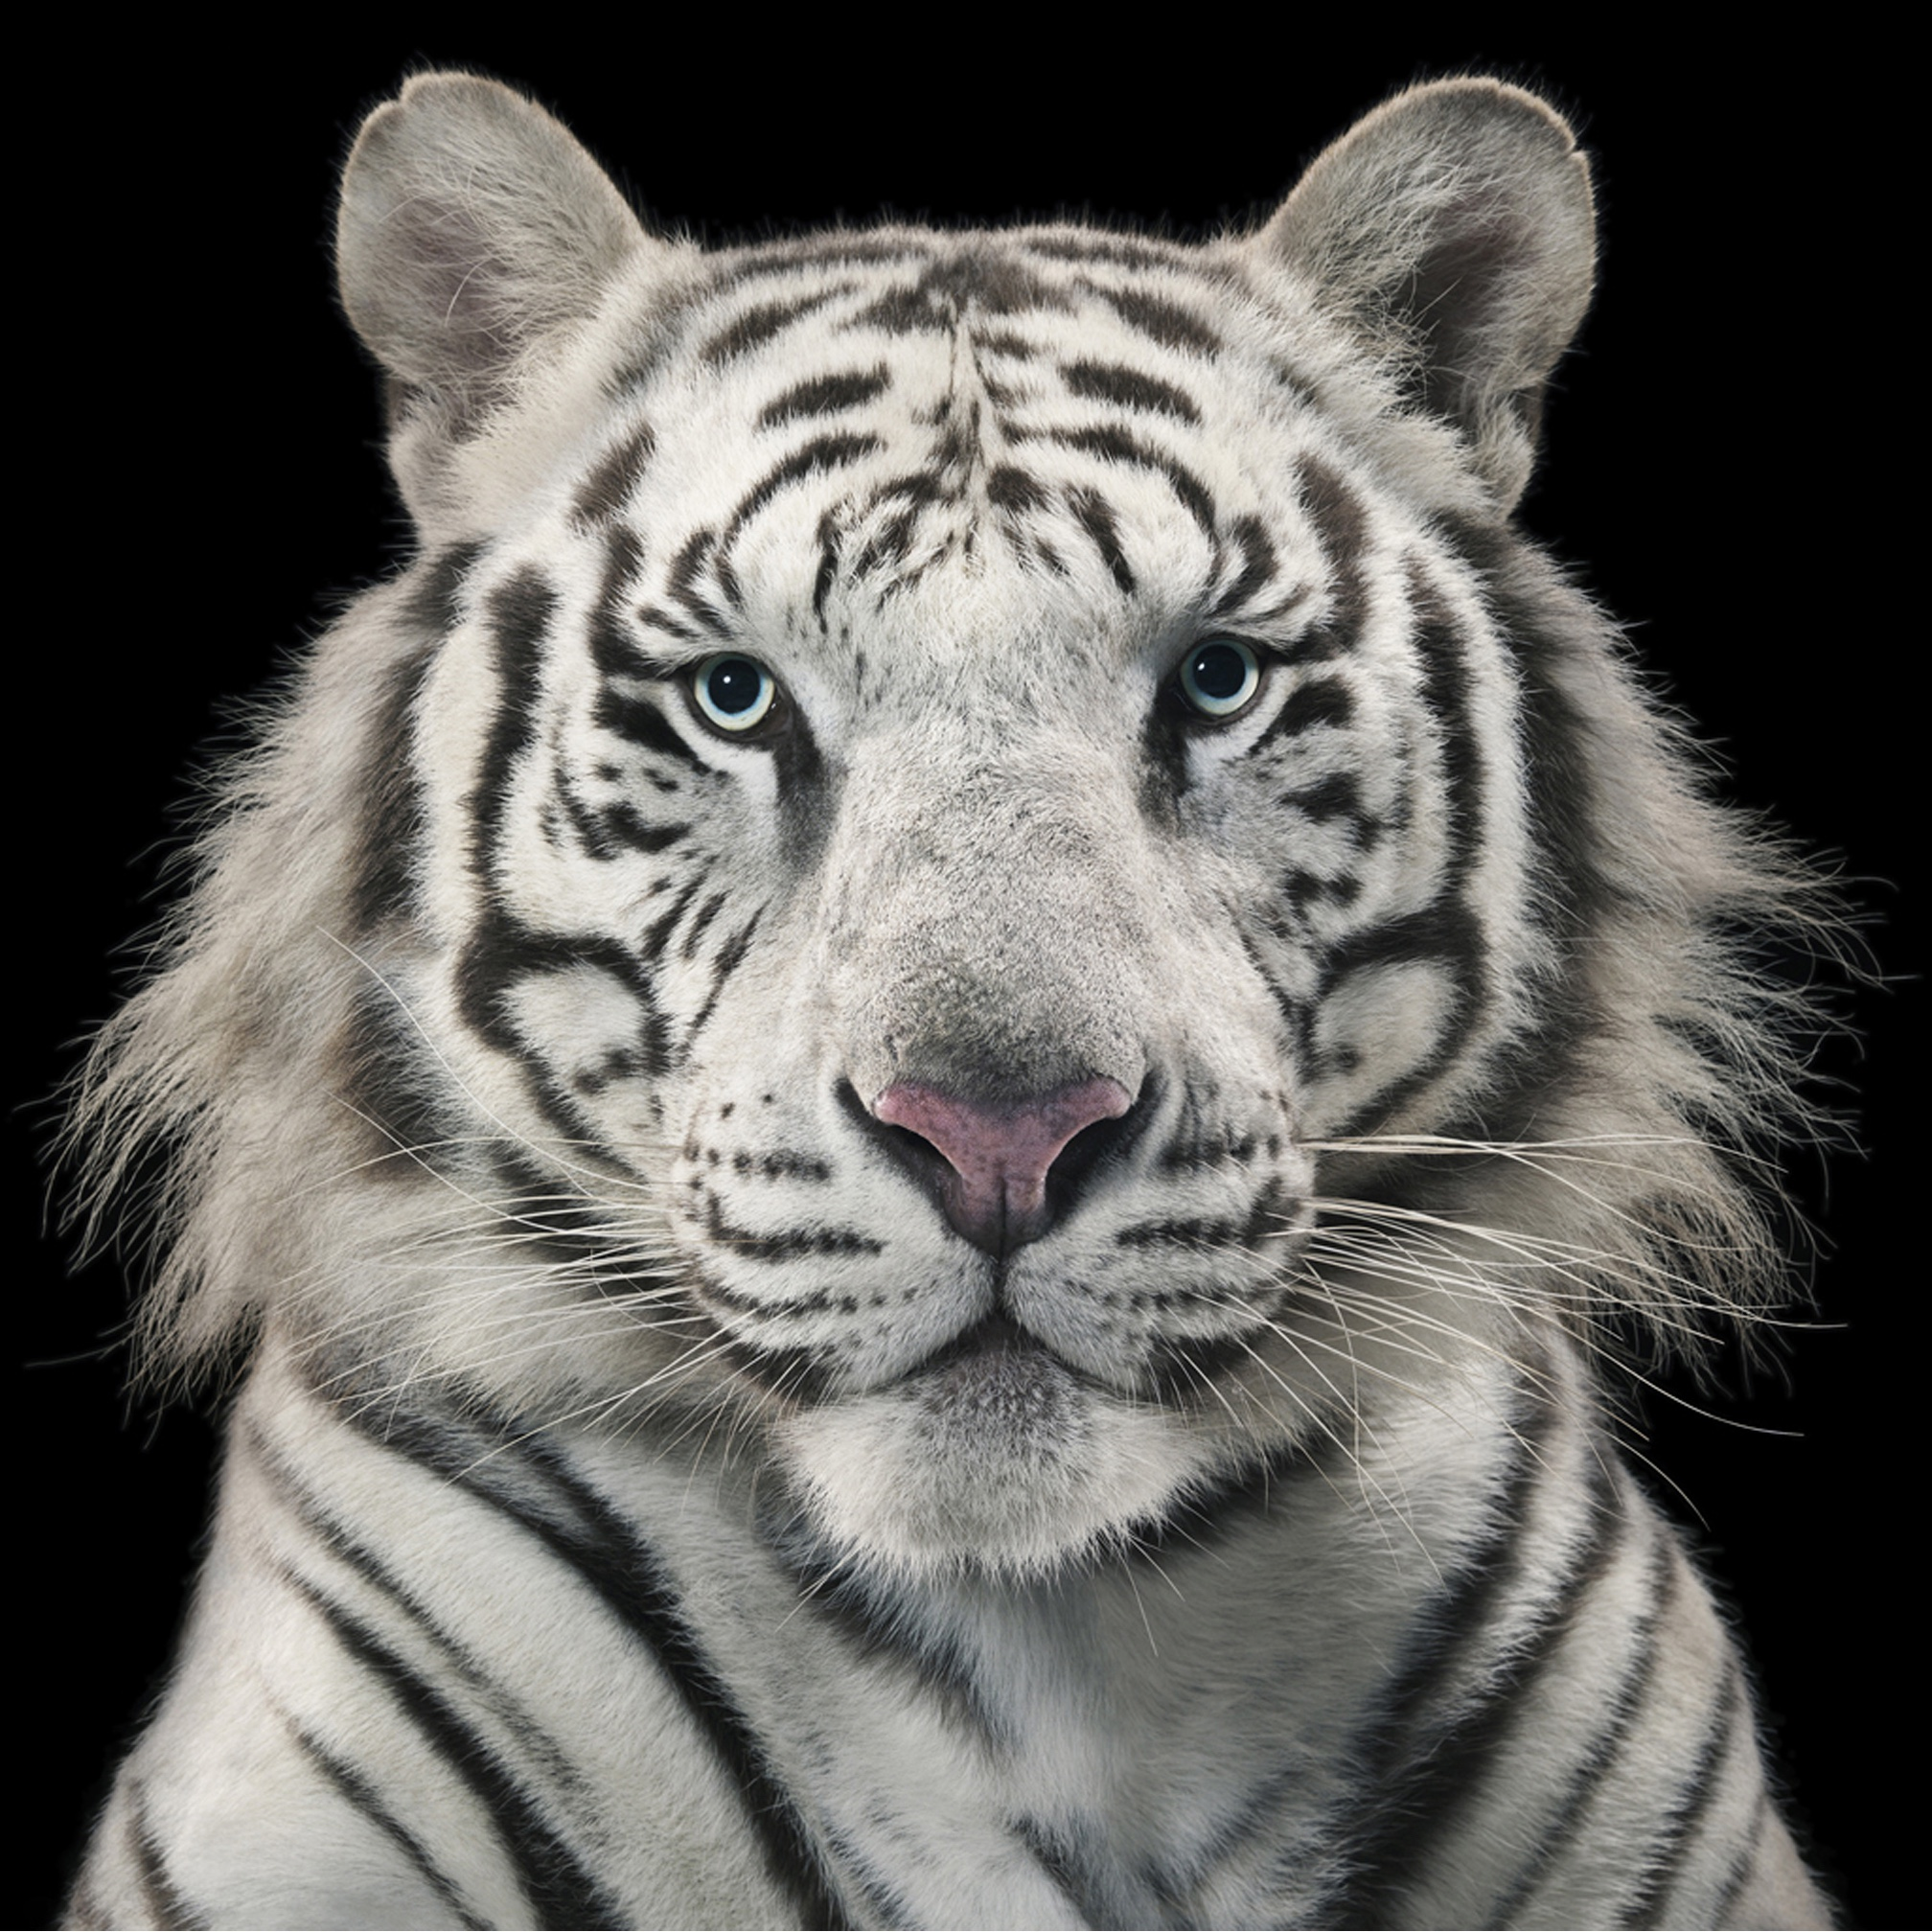 Royal White Tiger by Tim Flach